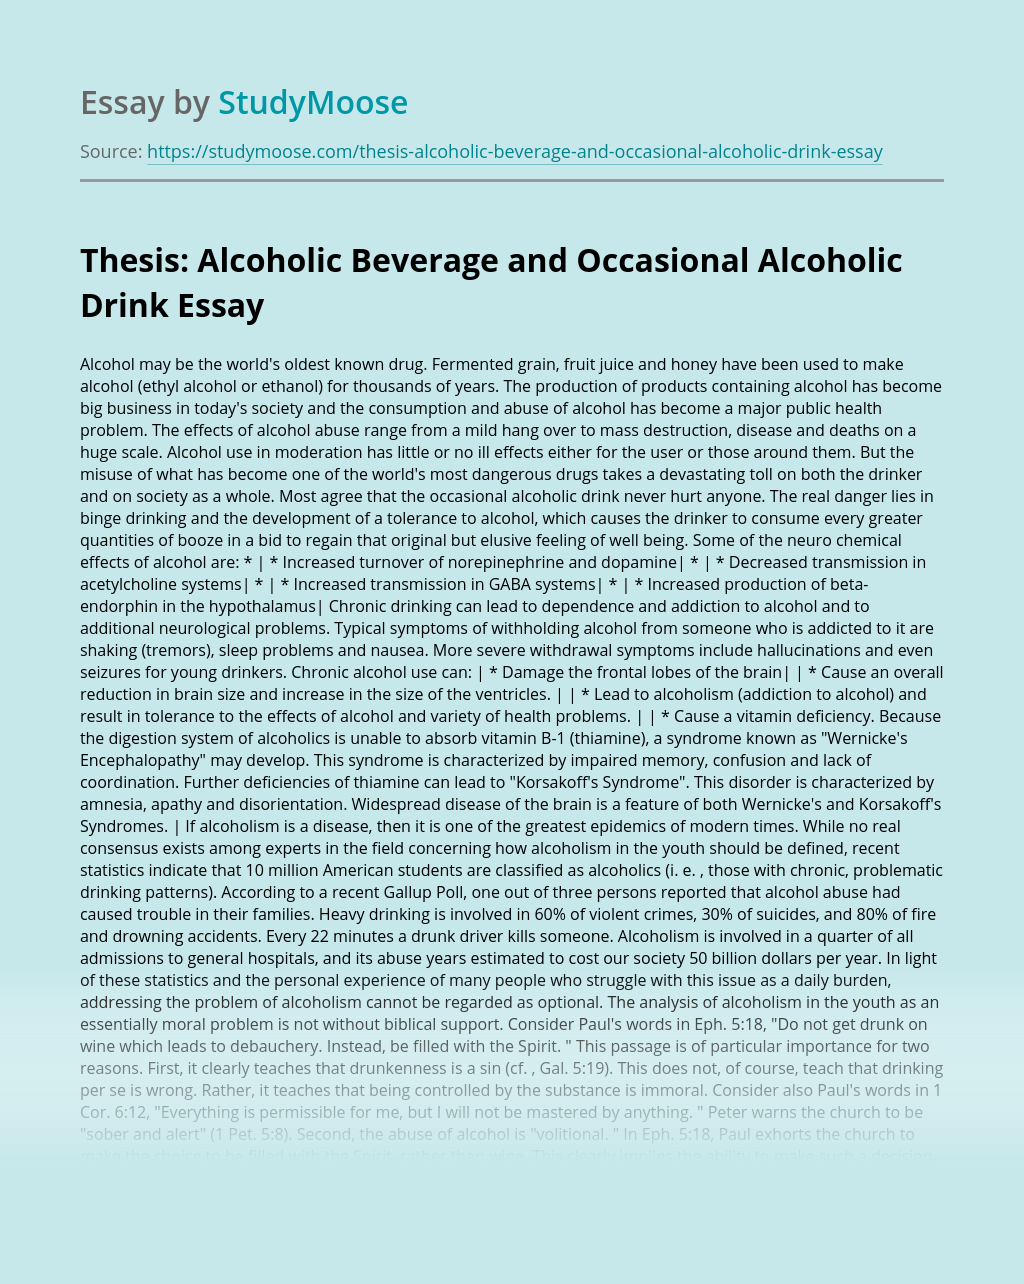 Thesis: Alcoholic Beverage and Occasional Alcoholic Drink